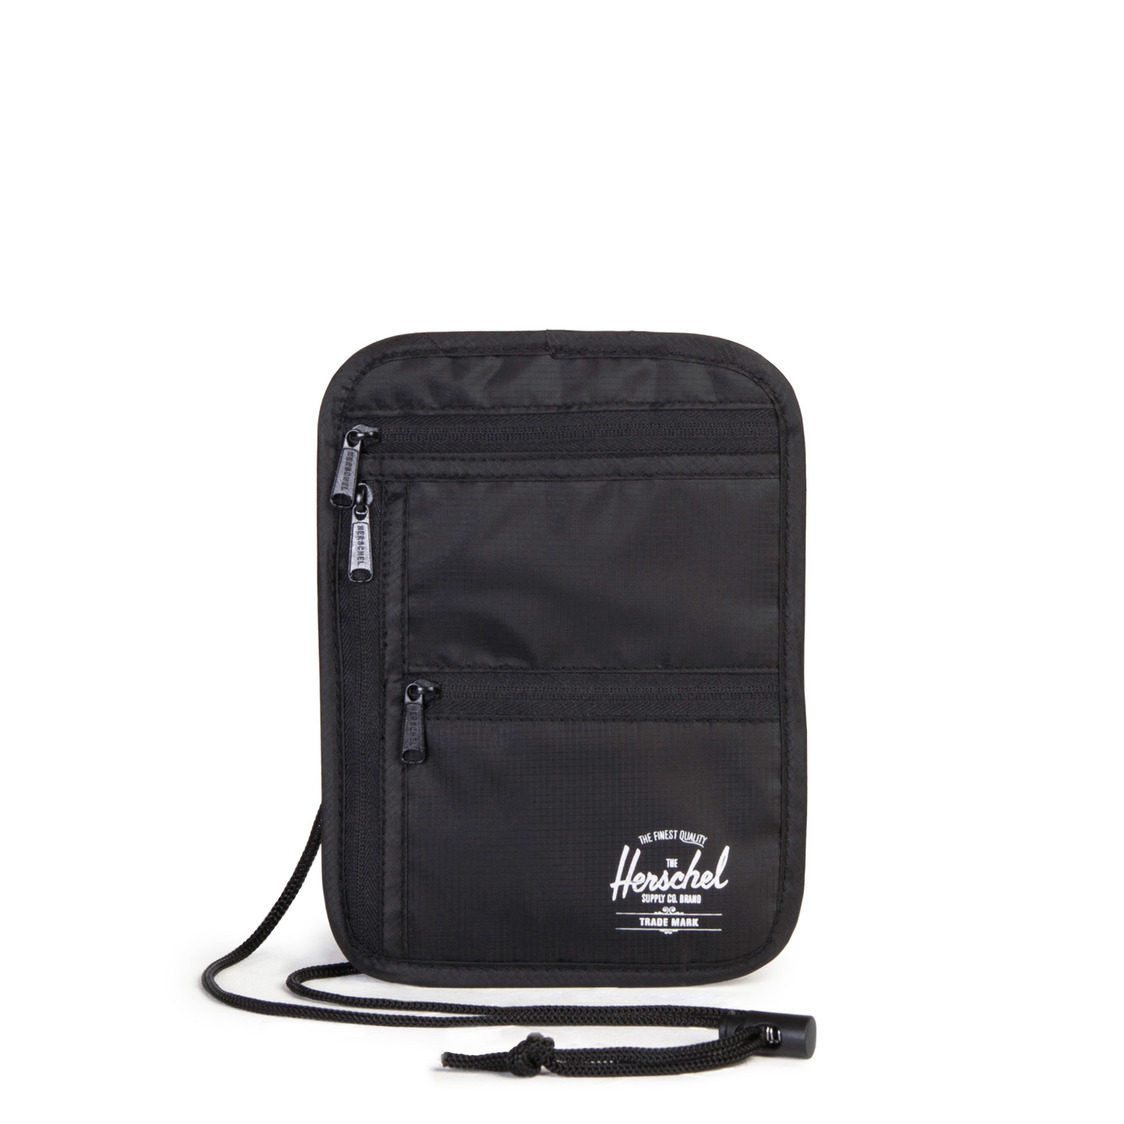 Money Pouch Black 10531-00001-OS